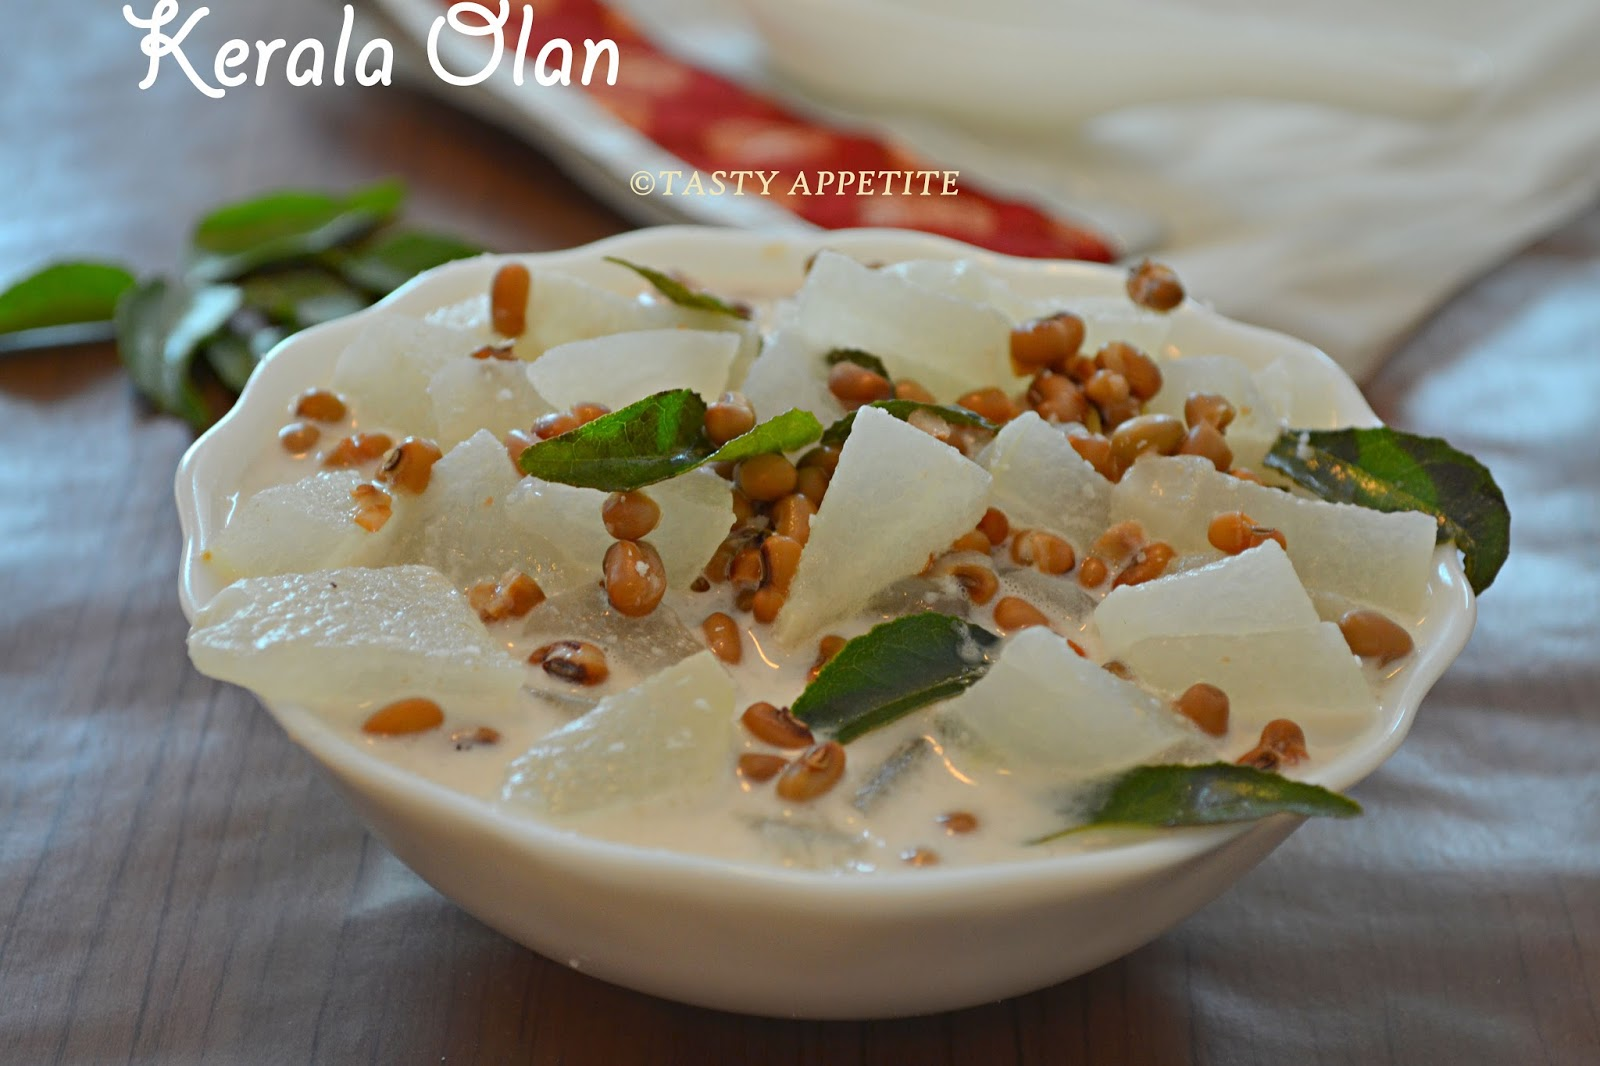 Olan kerala olan recipe onam sadya recipes forumfinder Choice Image